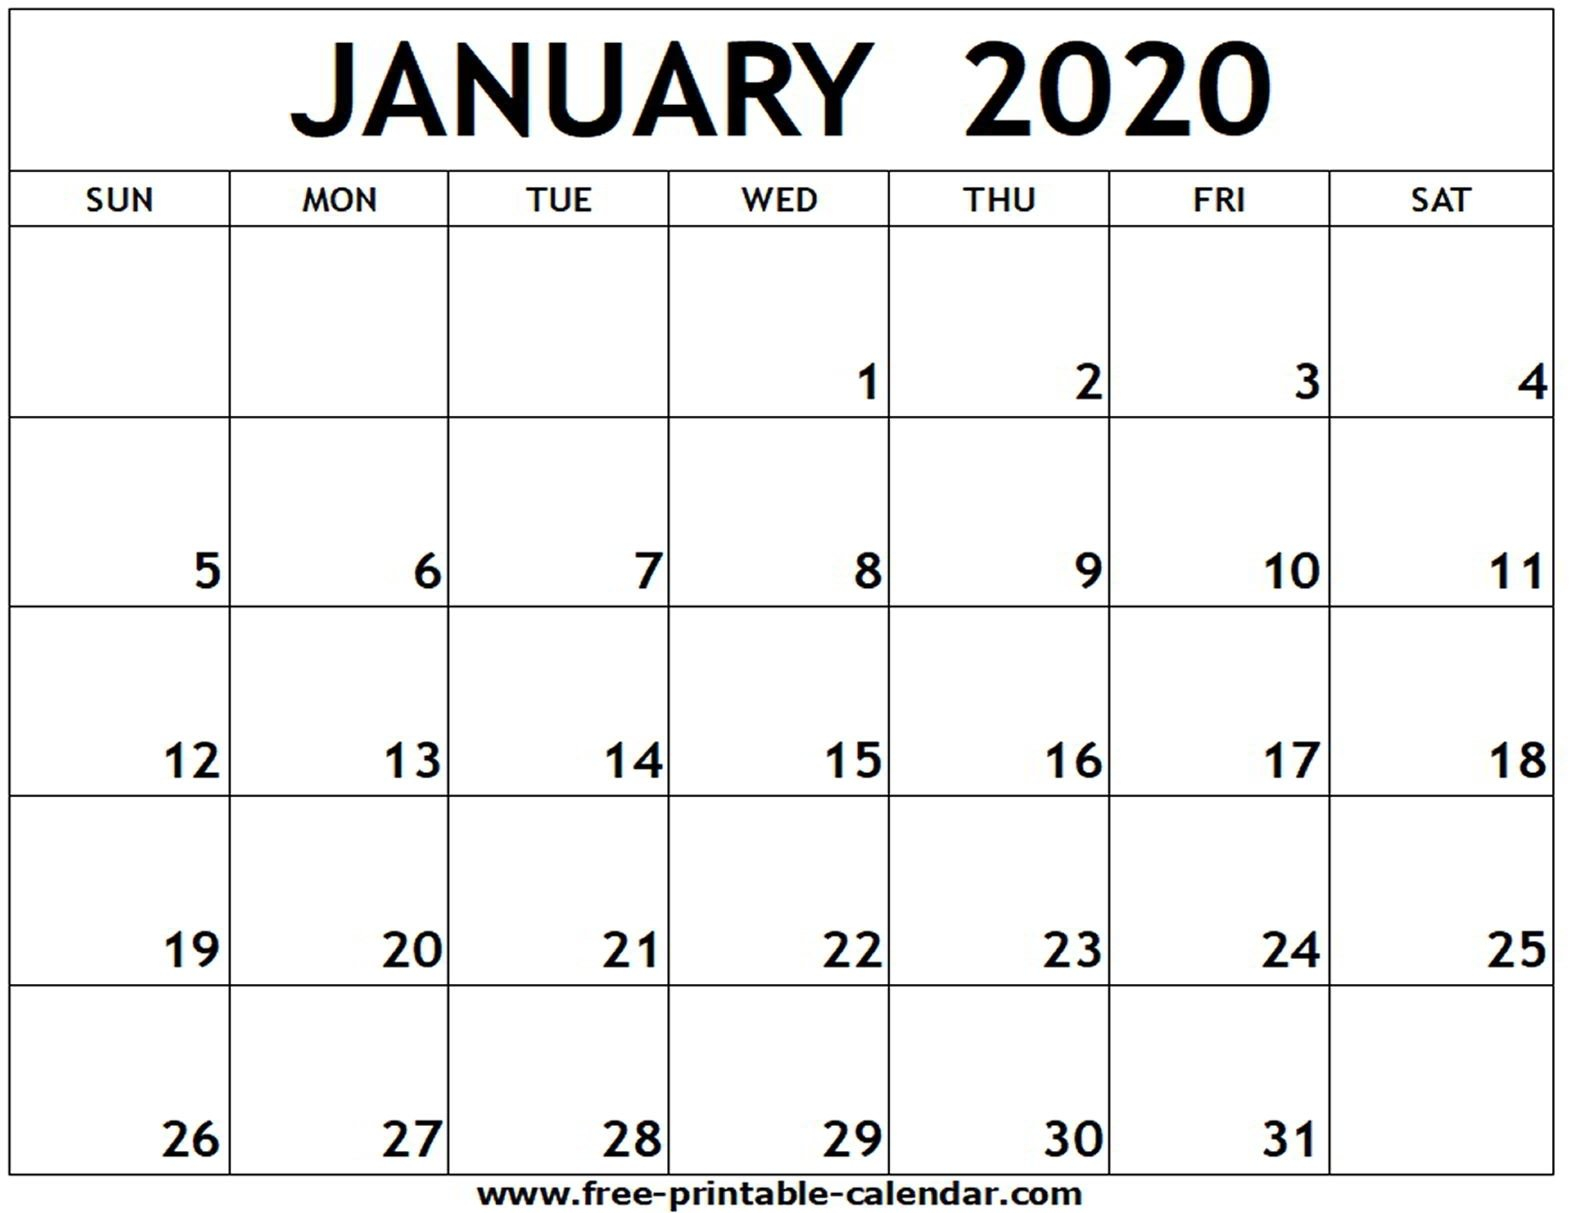 Free Printable 2020 Calendar To I Can Edit - Calendar Calender You Cann Edit With Holidays On It